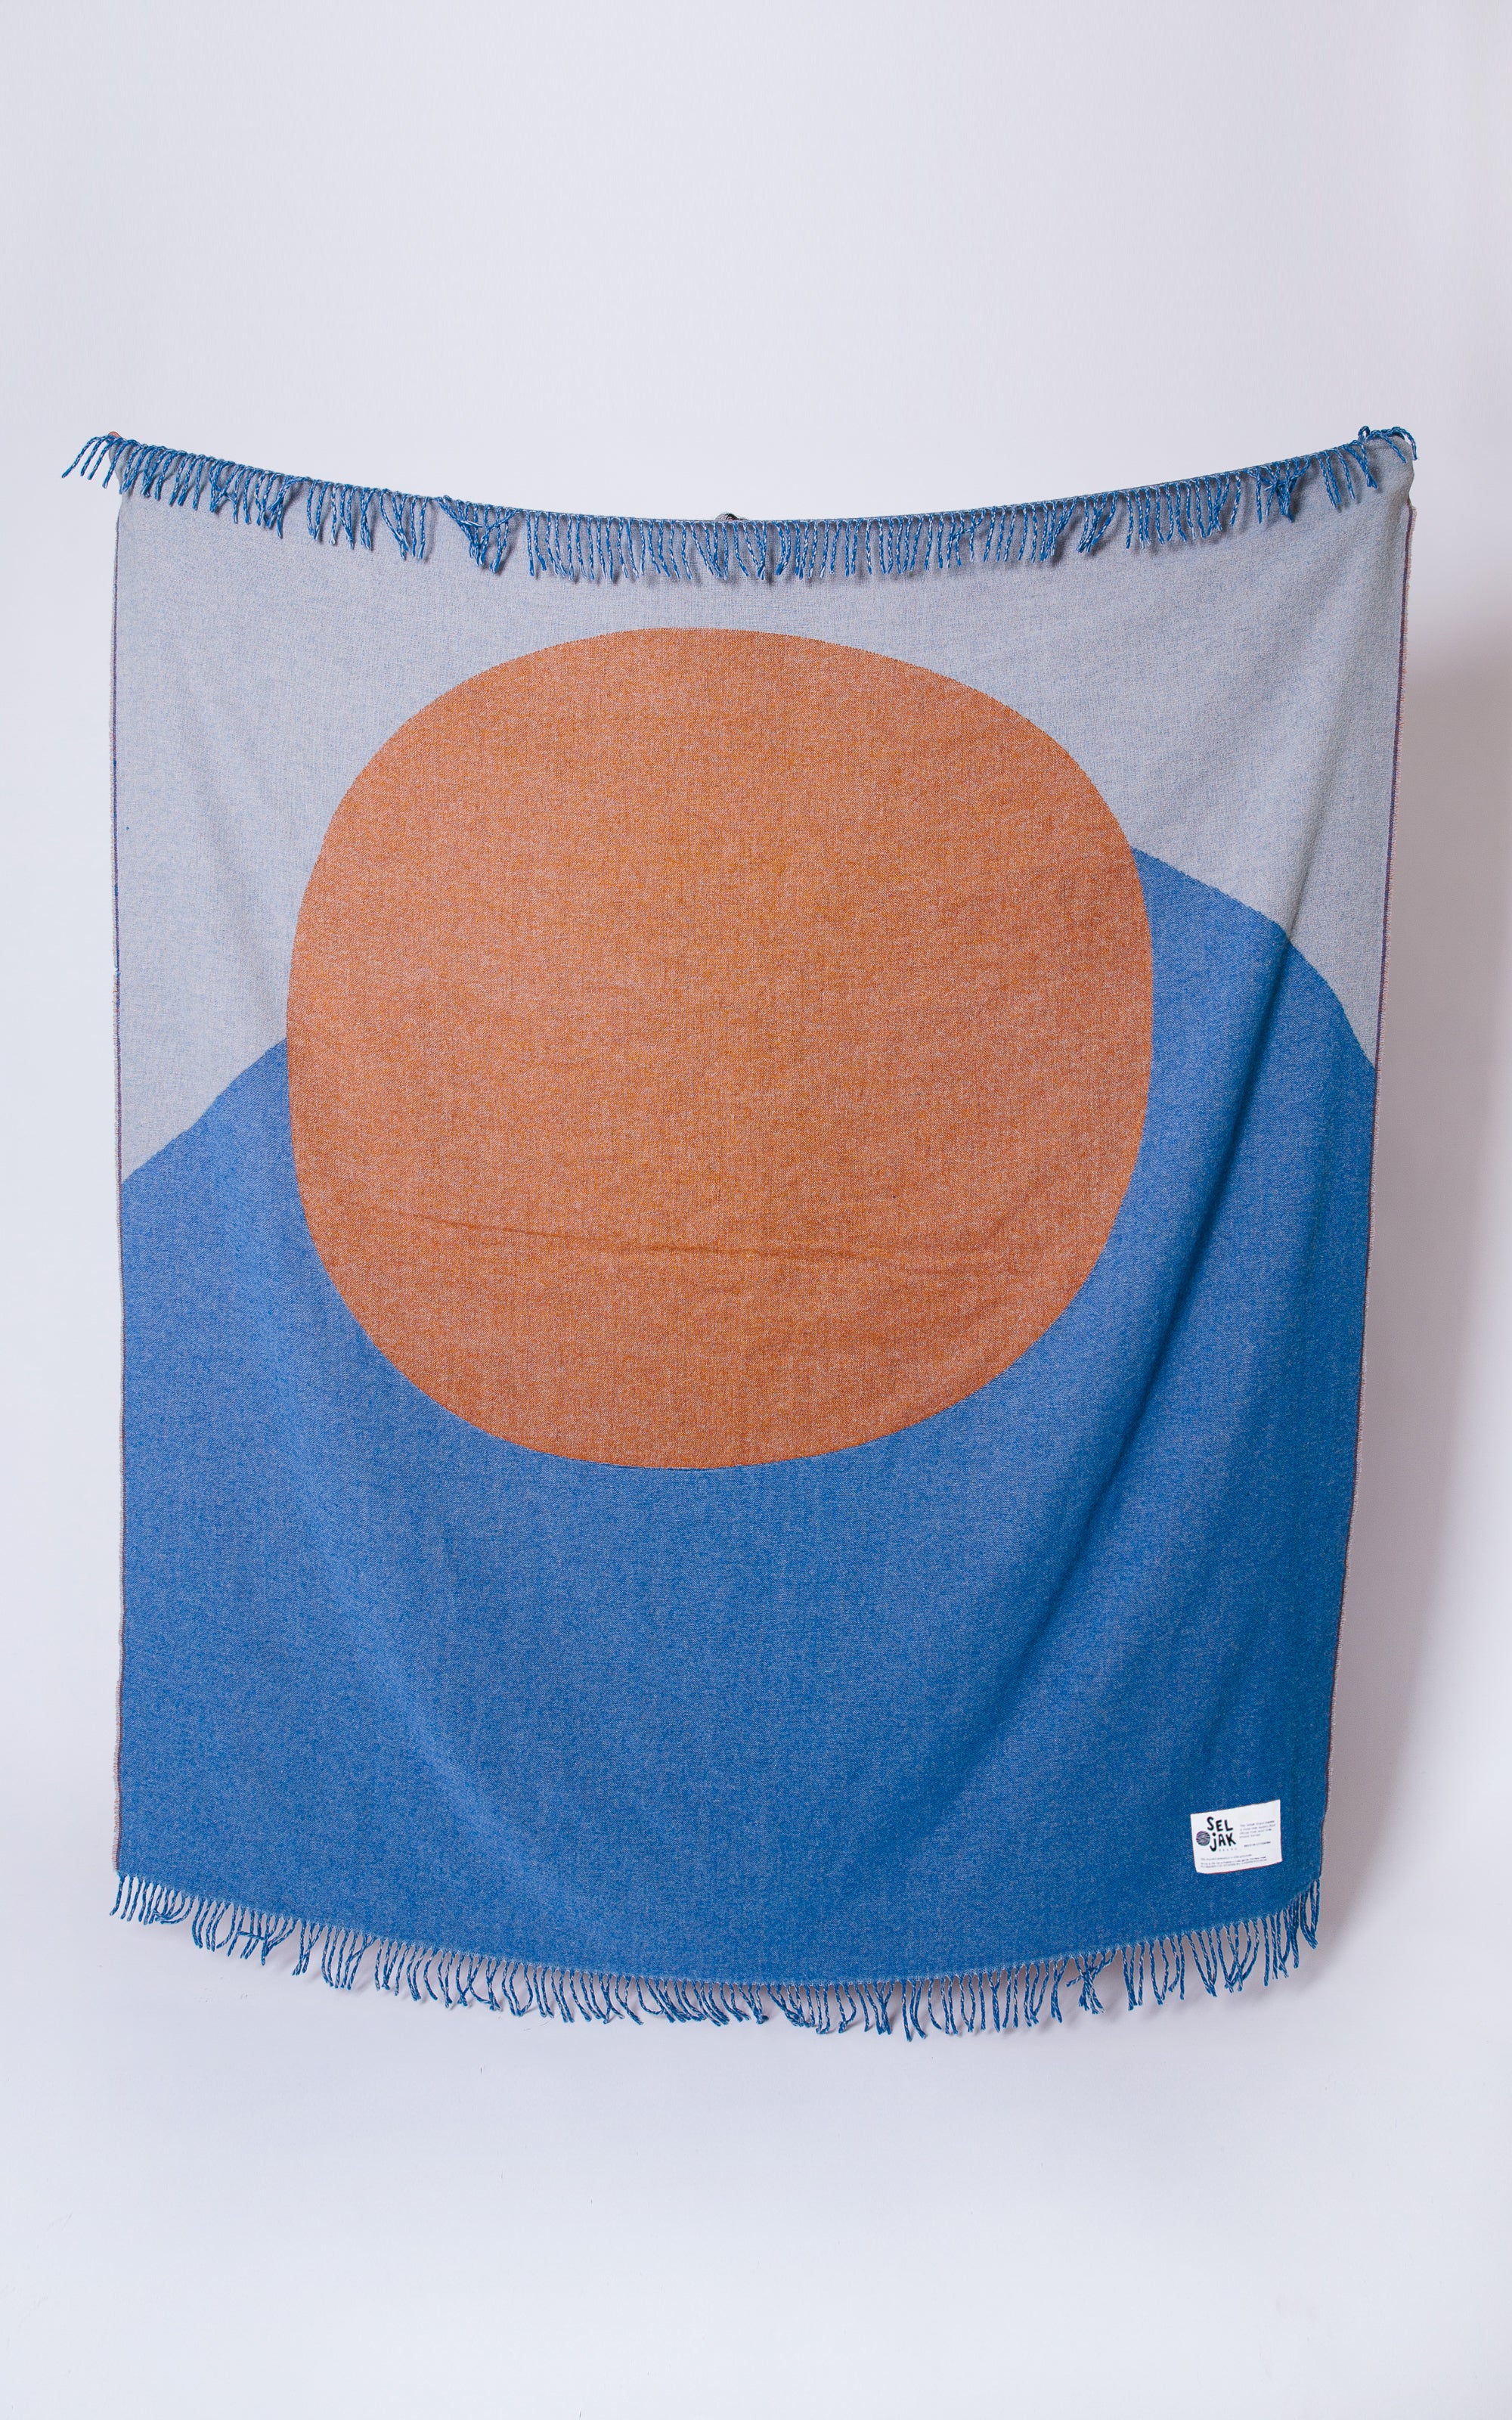 Dune + Lune blanket bundle